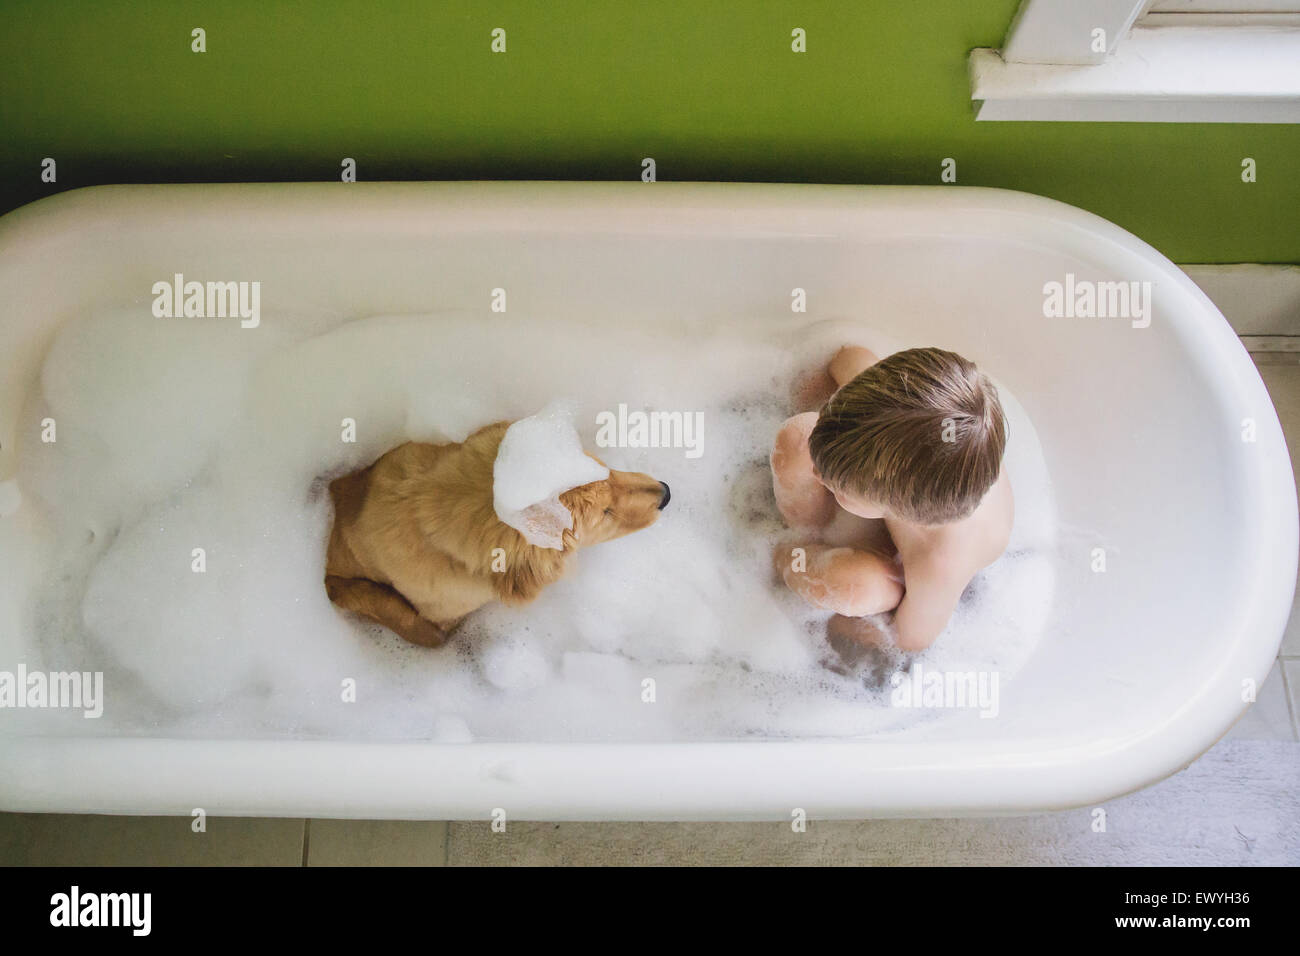 Boy and dog sitting in bathtub - Stock Image